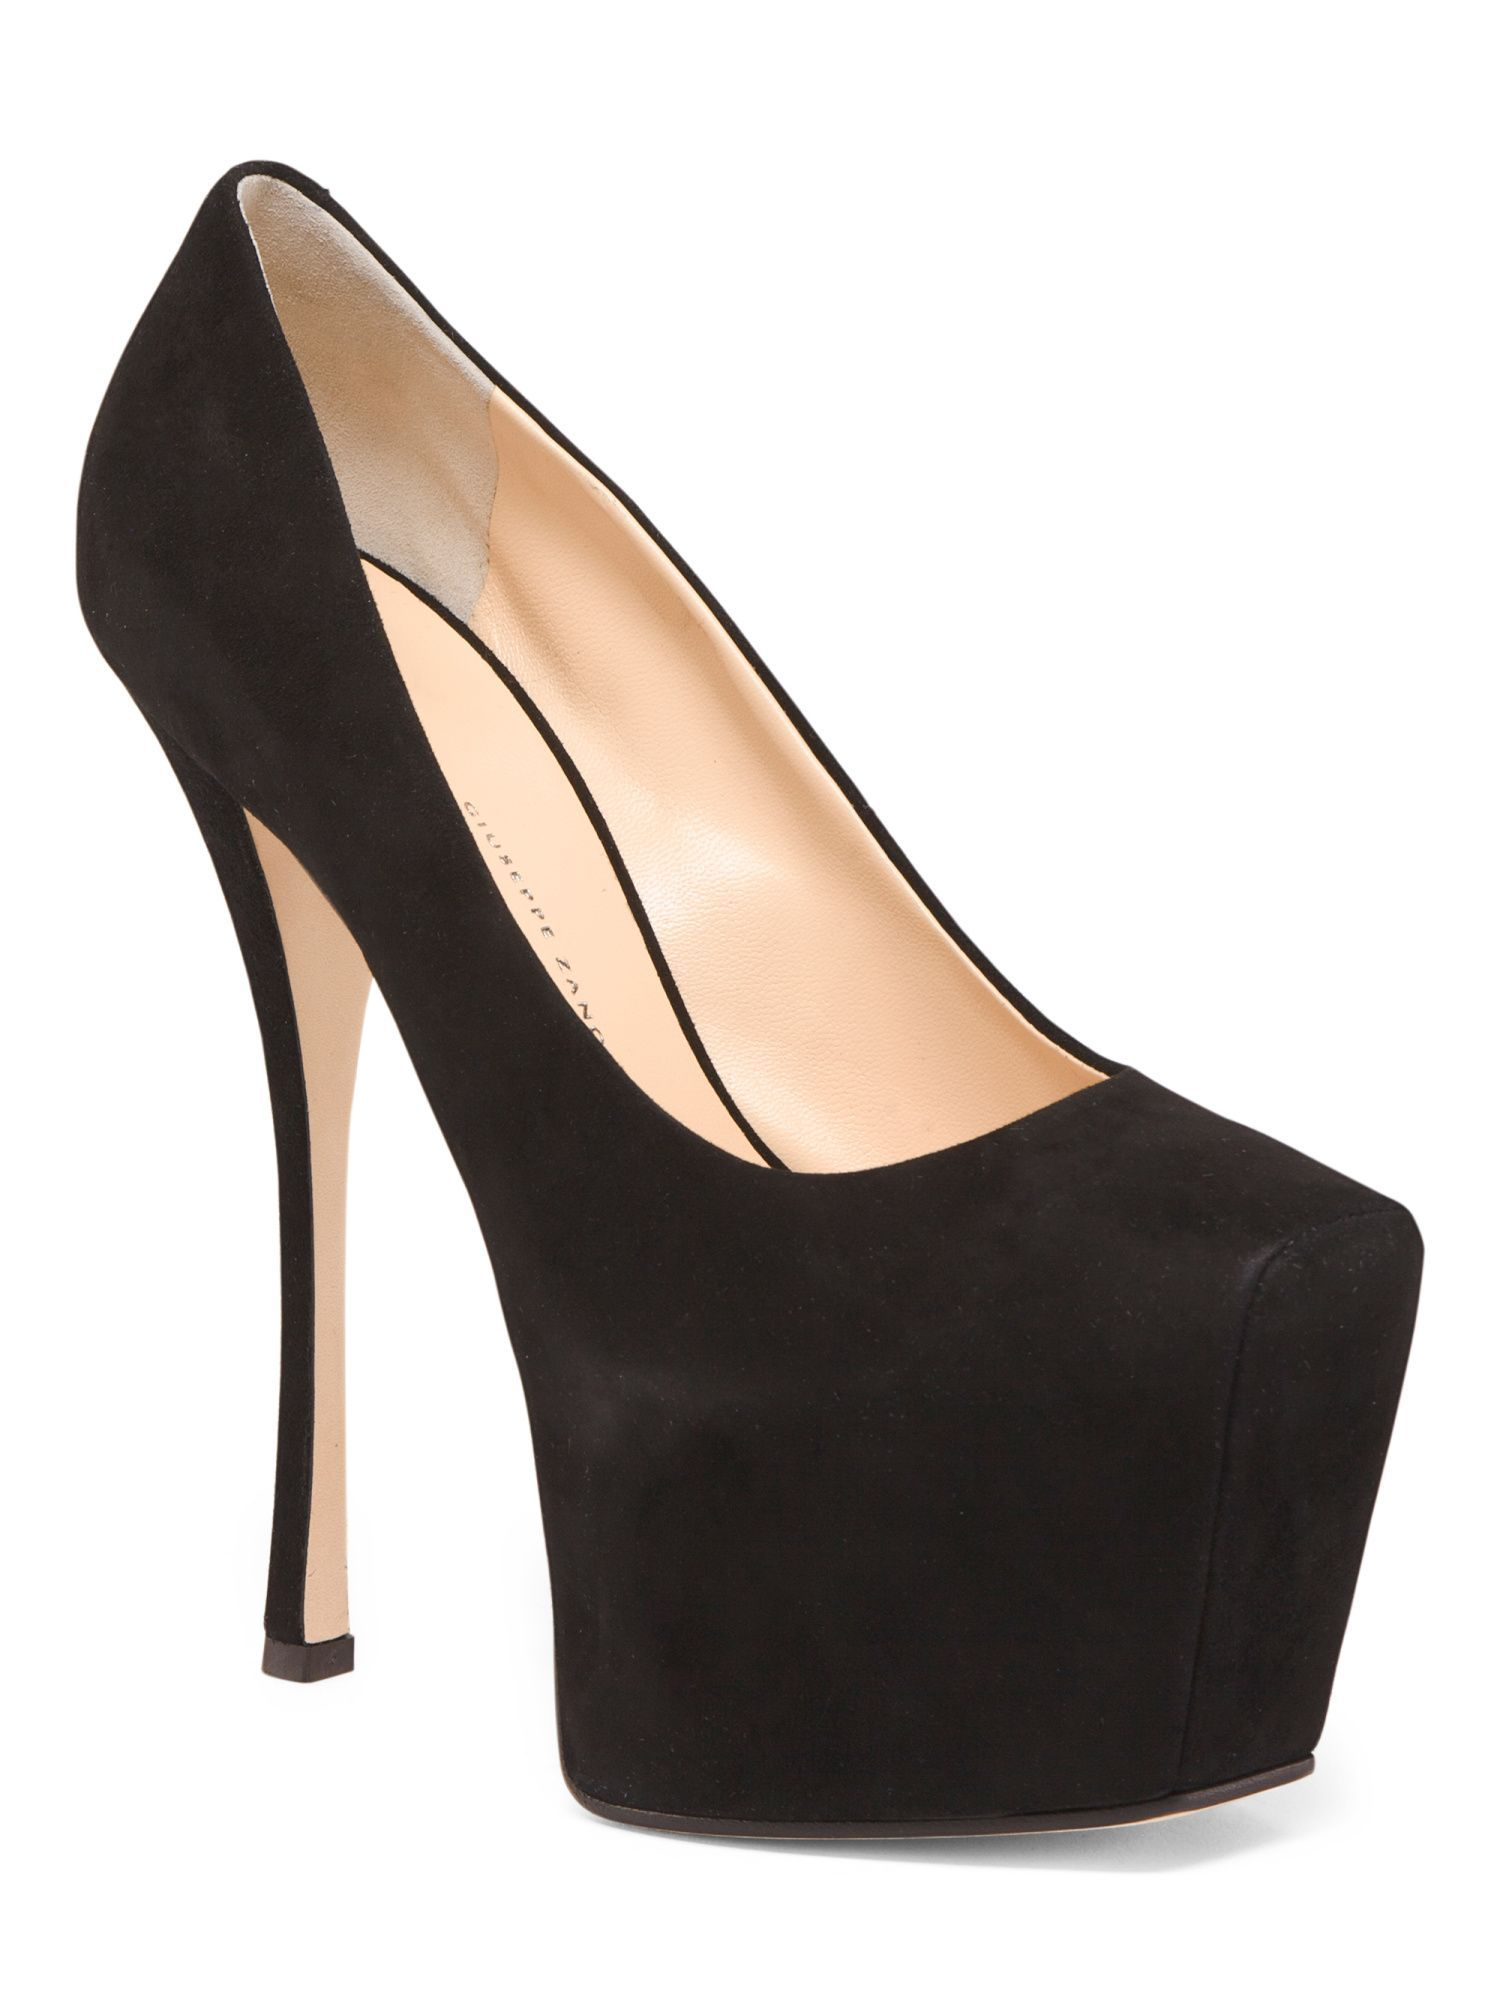 5f86602cab062 Made In Italy Suede Platform Pumps | Products | Shoes, Suede ...